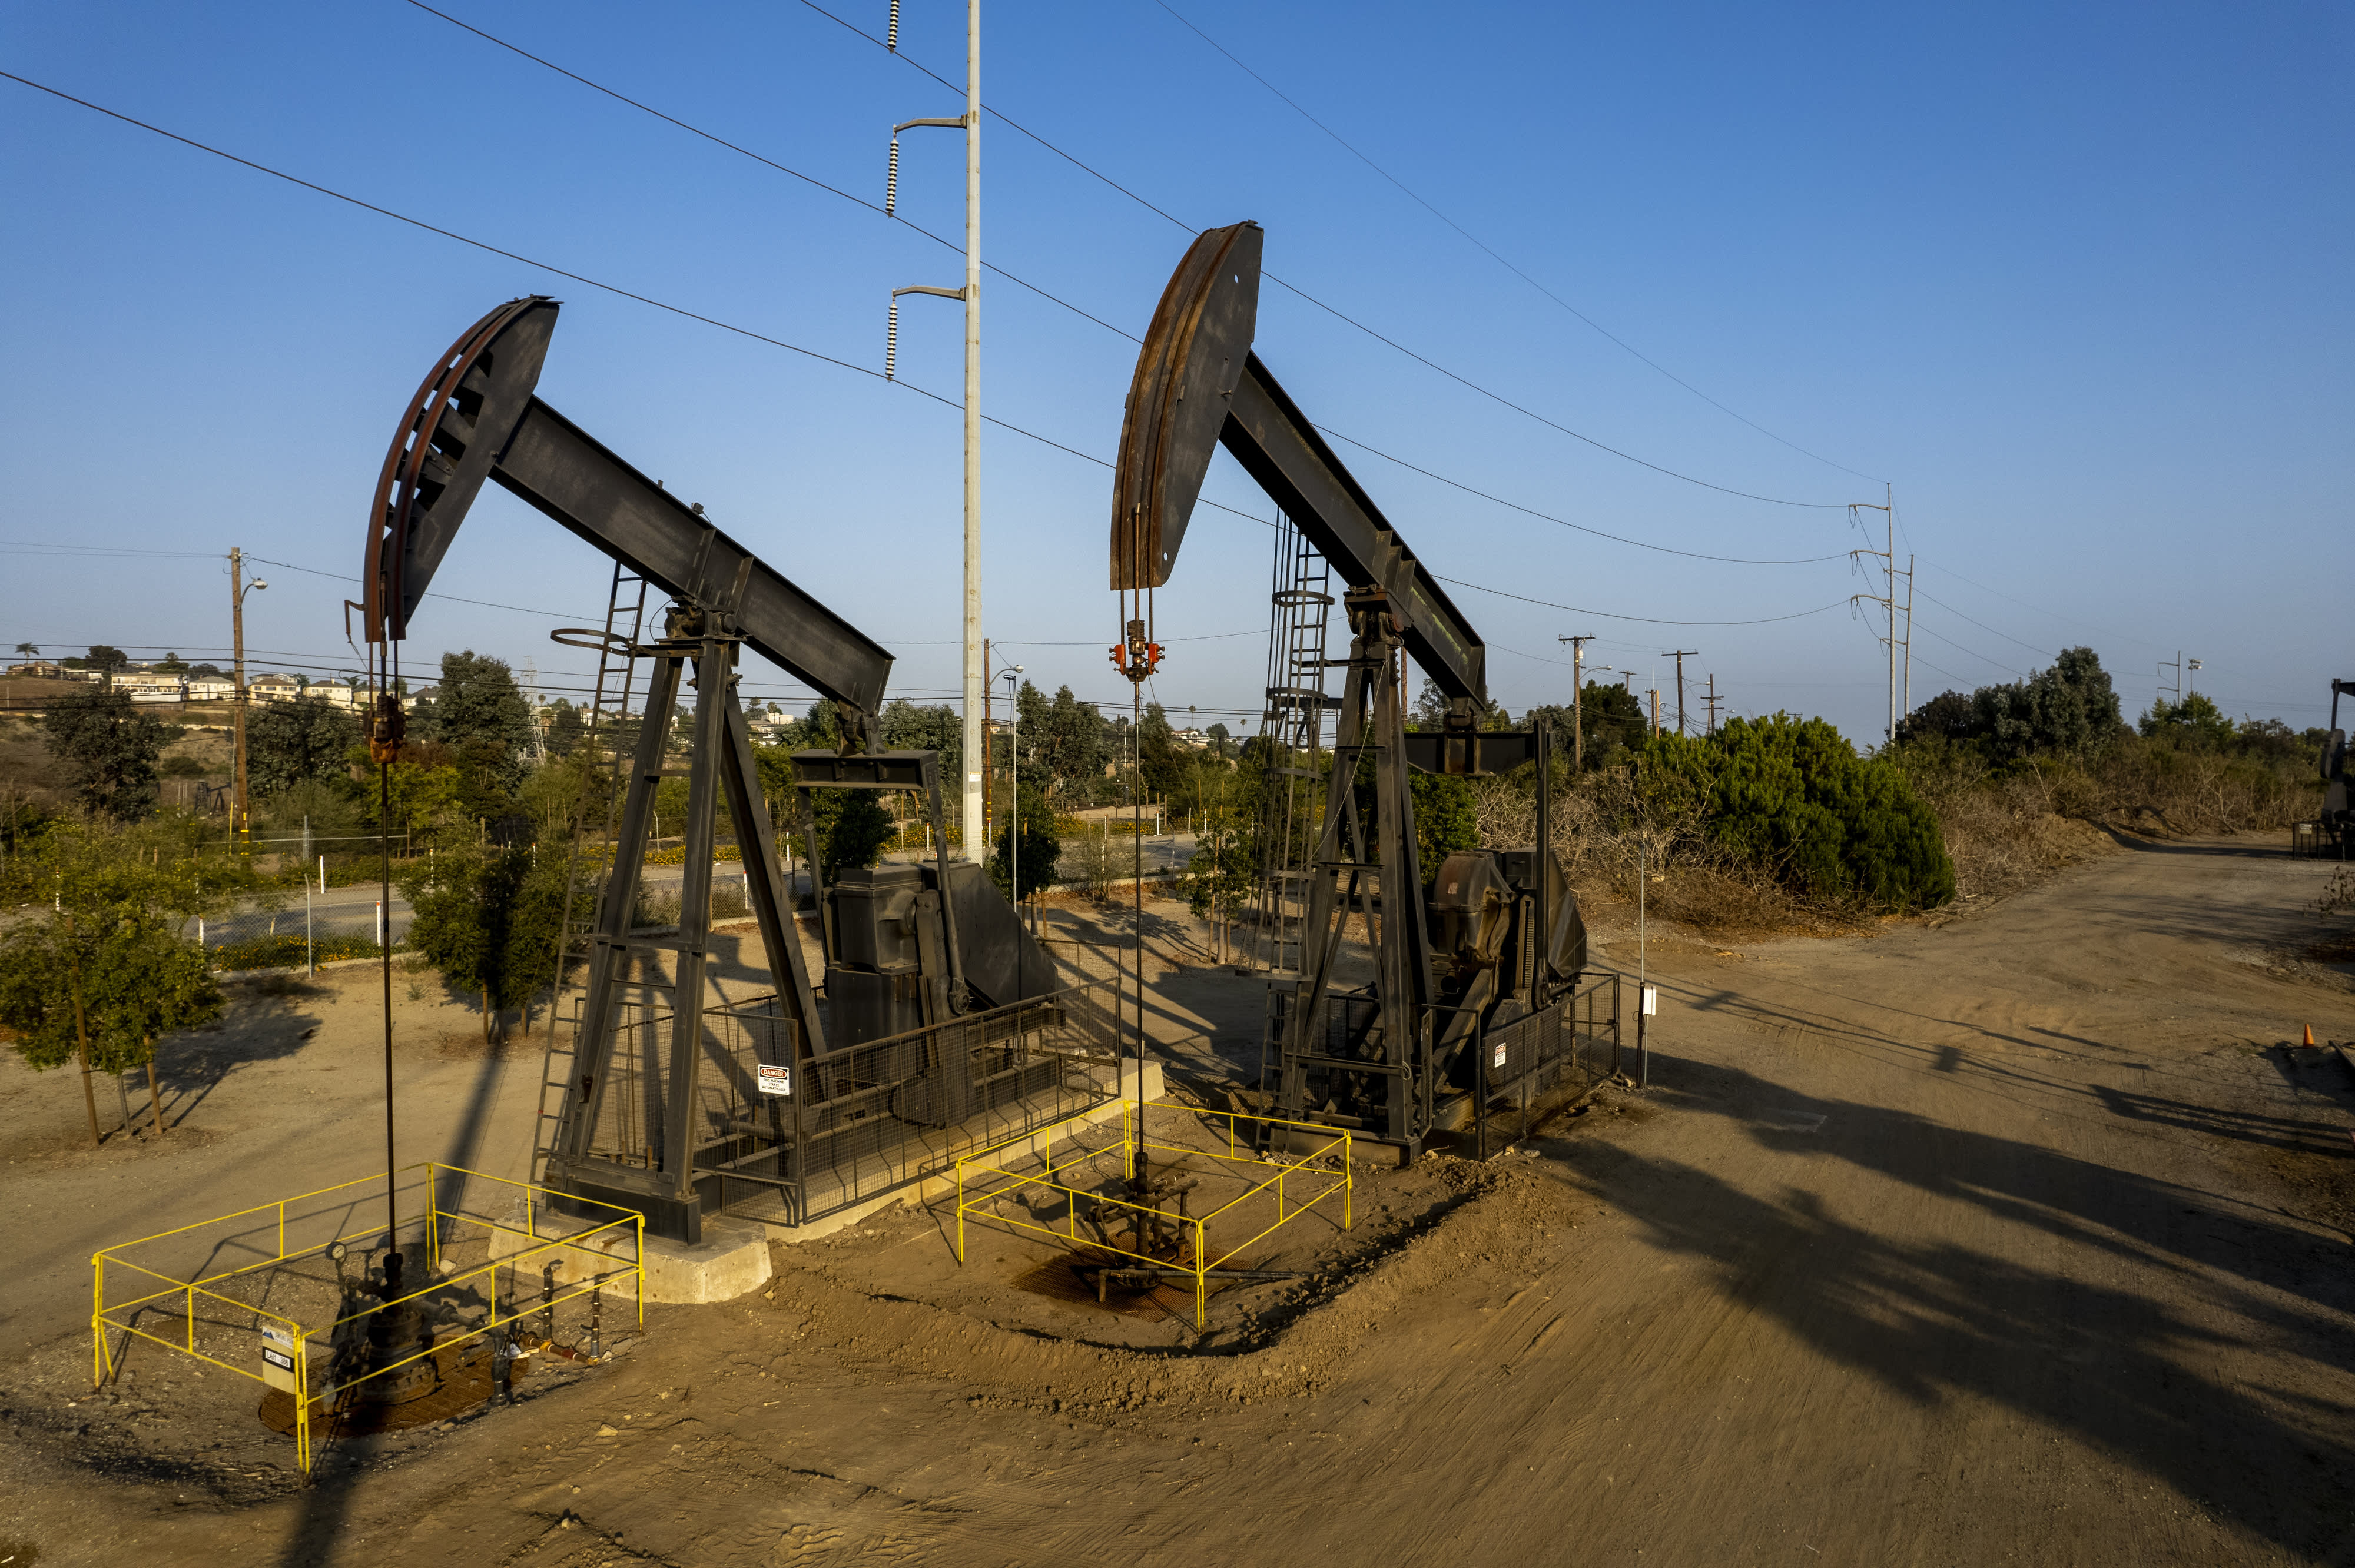 Crude falls 4% more on surging Covid cases, following worst week since October for oil